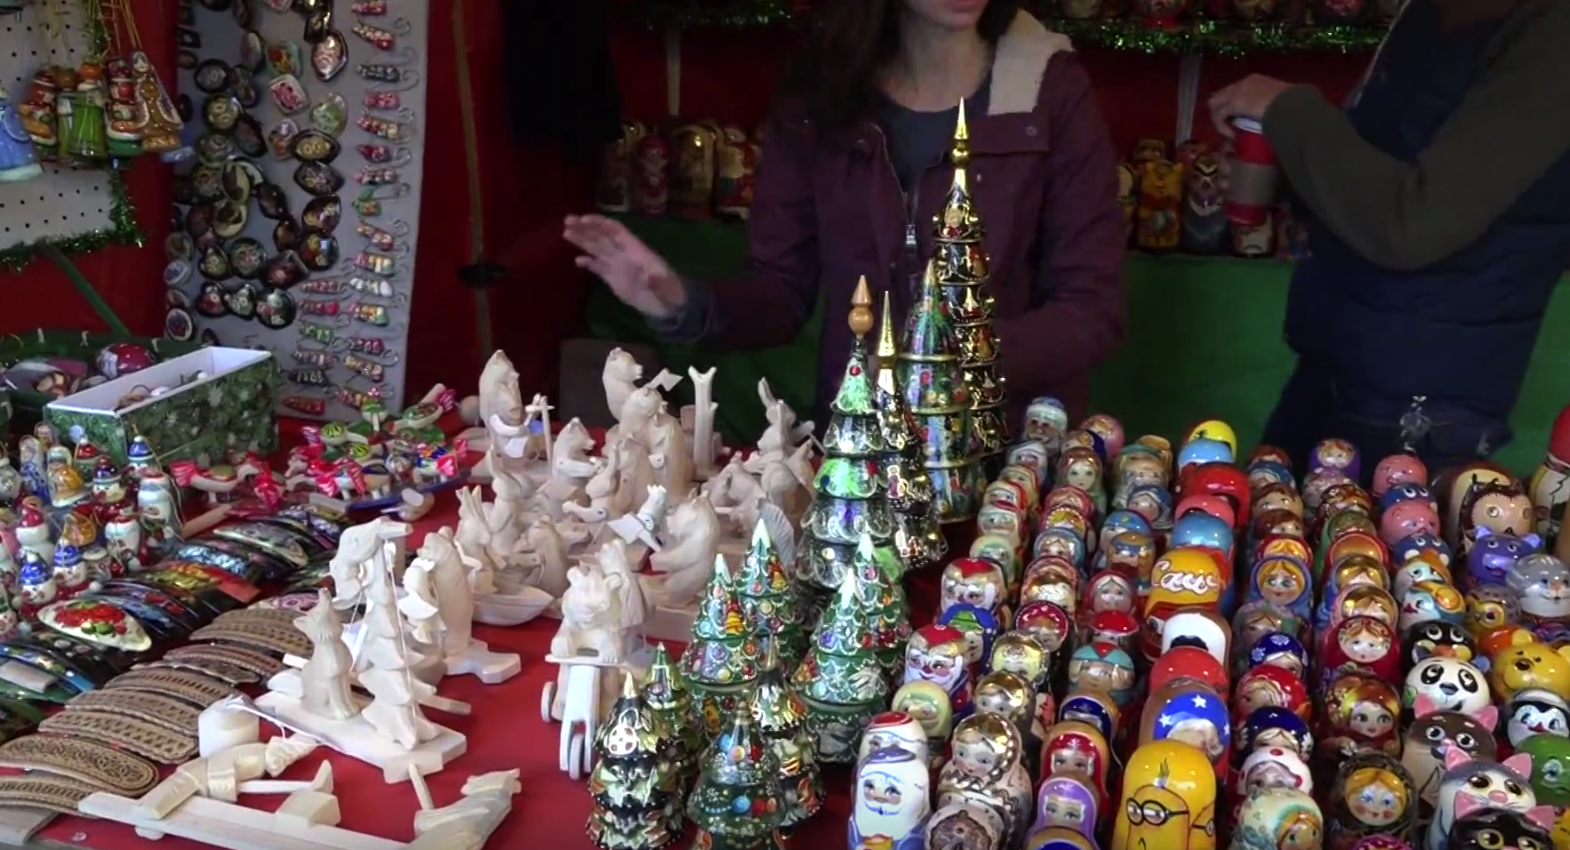 Annual Christmas Village is open for the holiday season. It can be found at Love Park in Center City, Philadelphia.